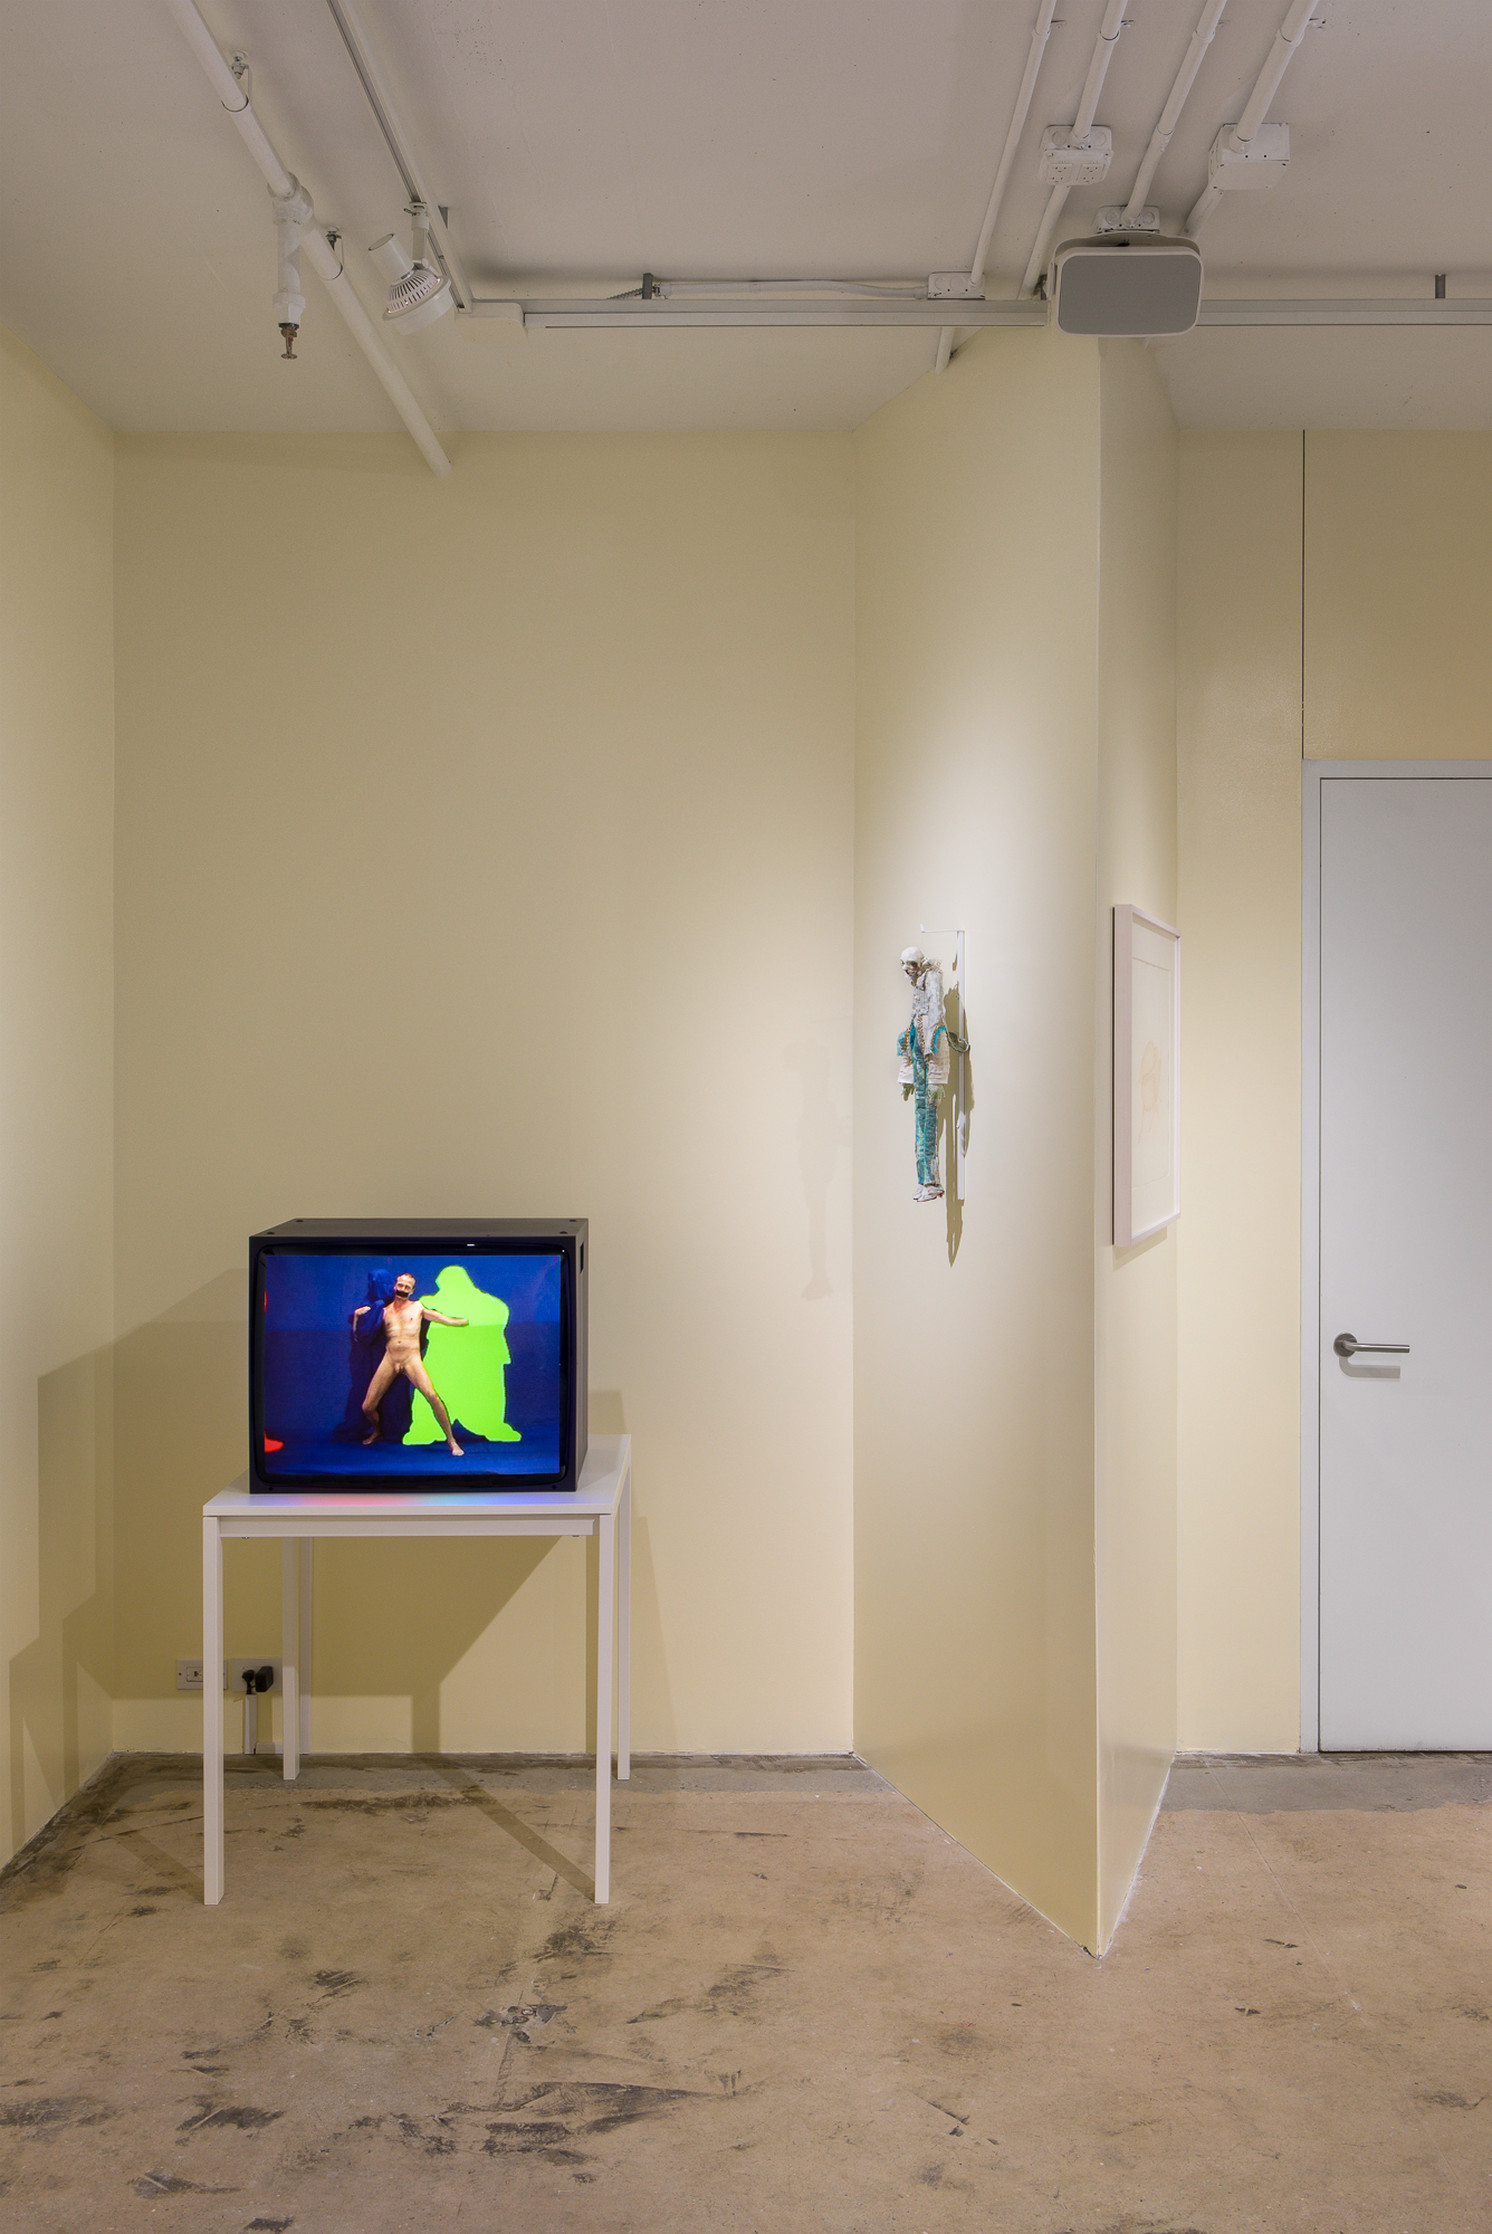 life and limbs, installation view. On monitor: Heimo Zobernig, Nr. 24, 2007. Video, color, no sound. 14 min 22 sec. Courtesy of Petzel Gallery, New York.